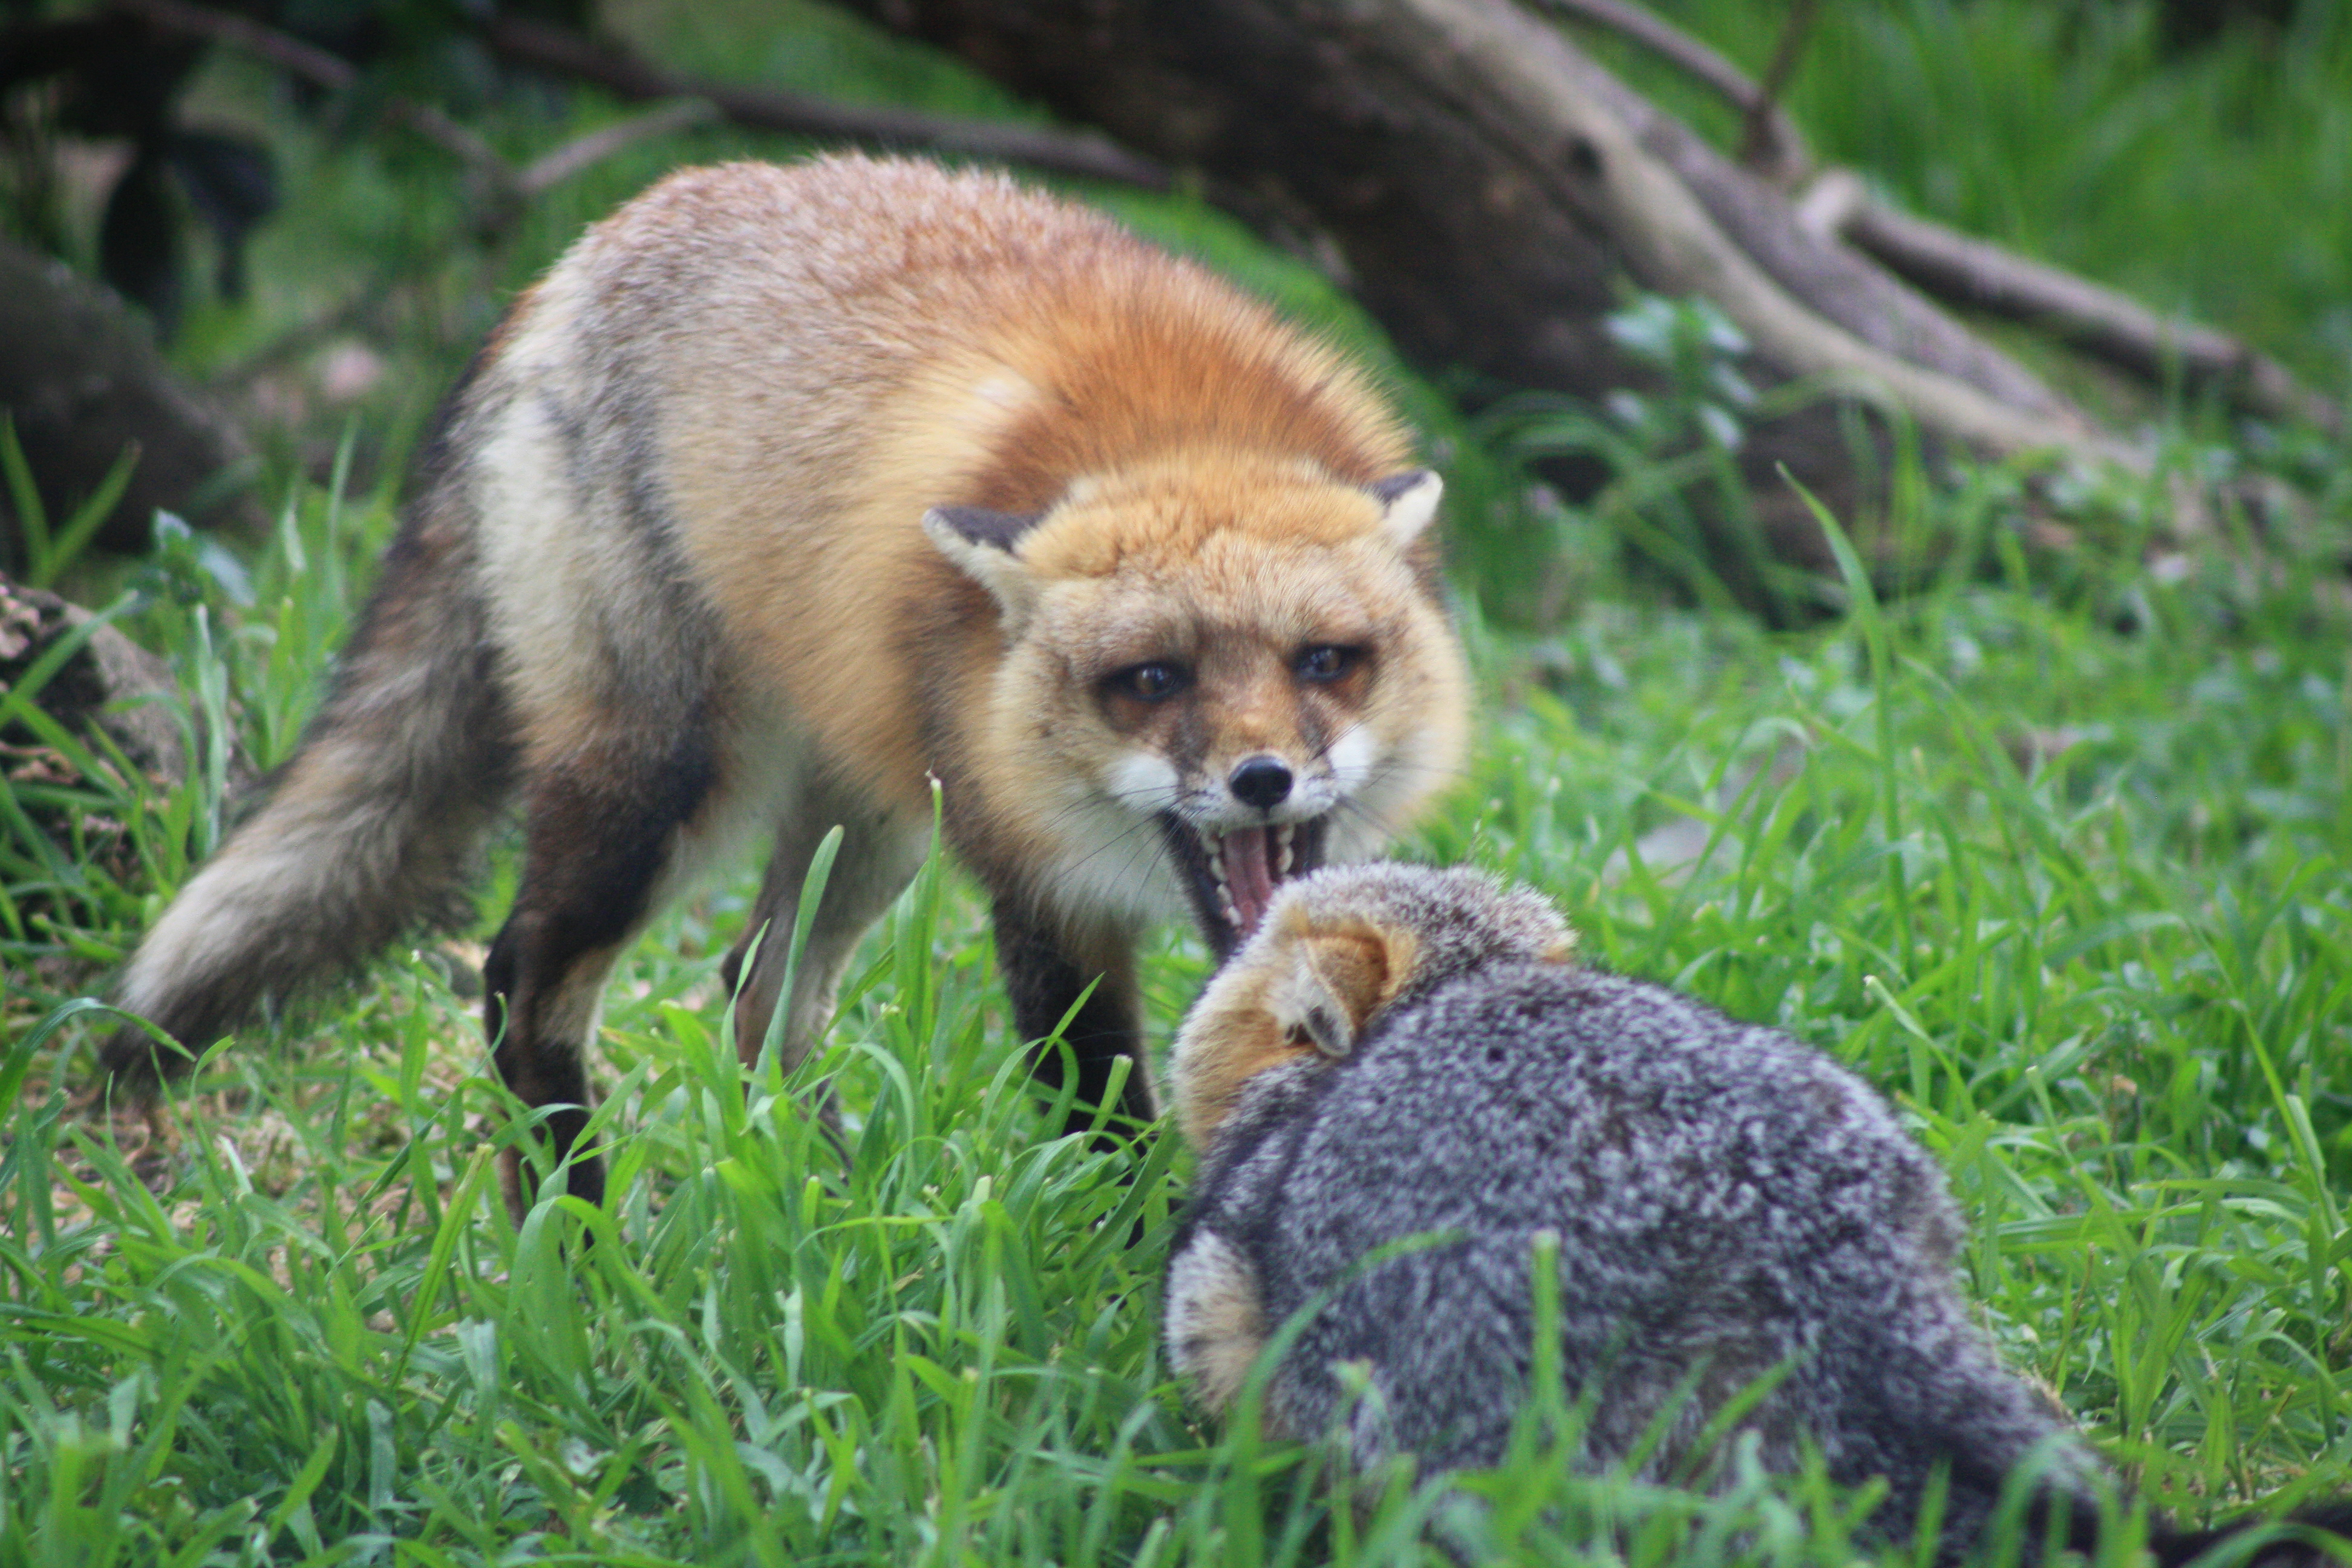 Red fox confronting grey fox, San Joaquin National Wildlife Refuge. Photo taken on March 5, 2013.